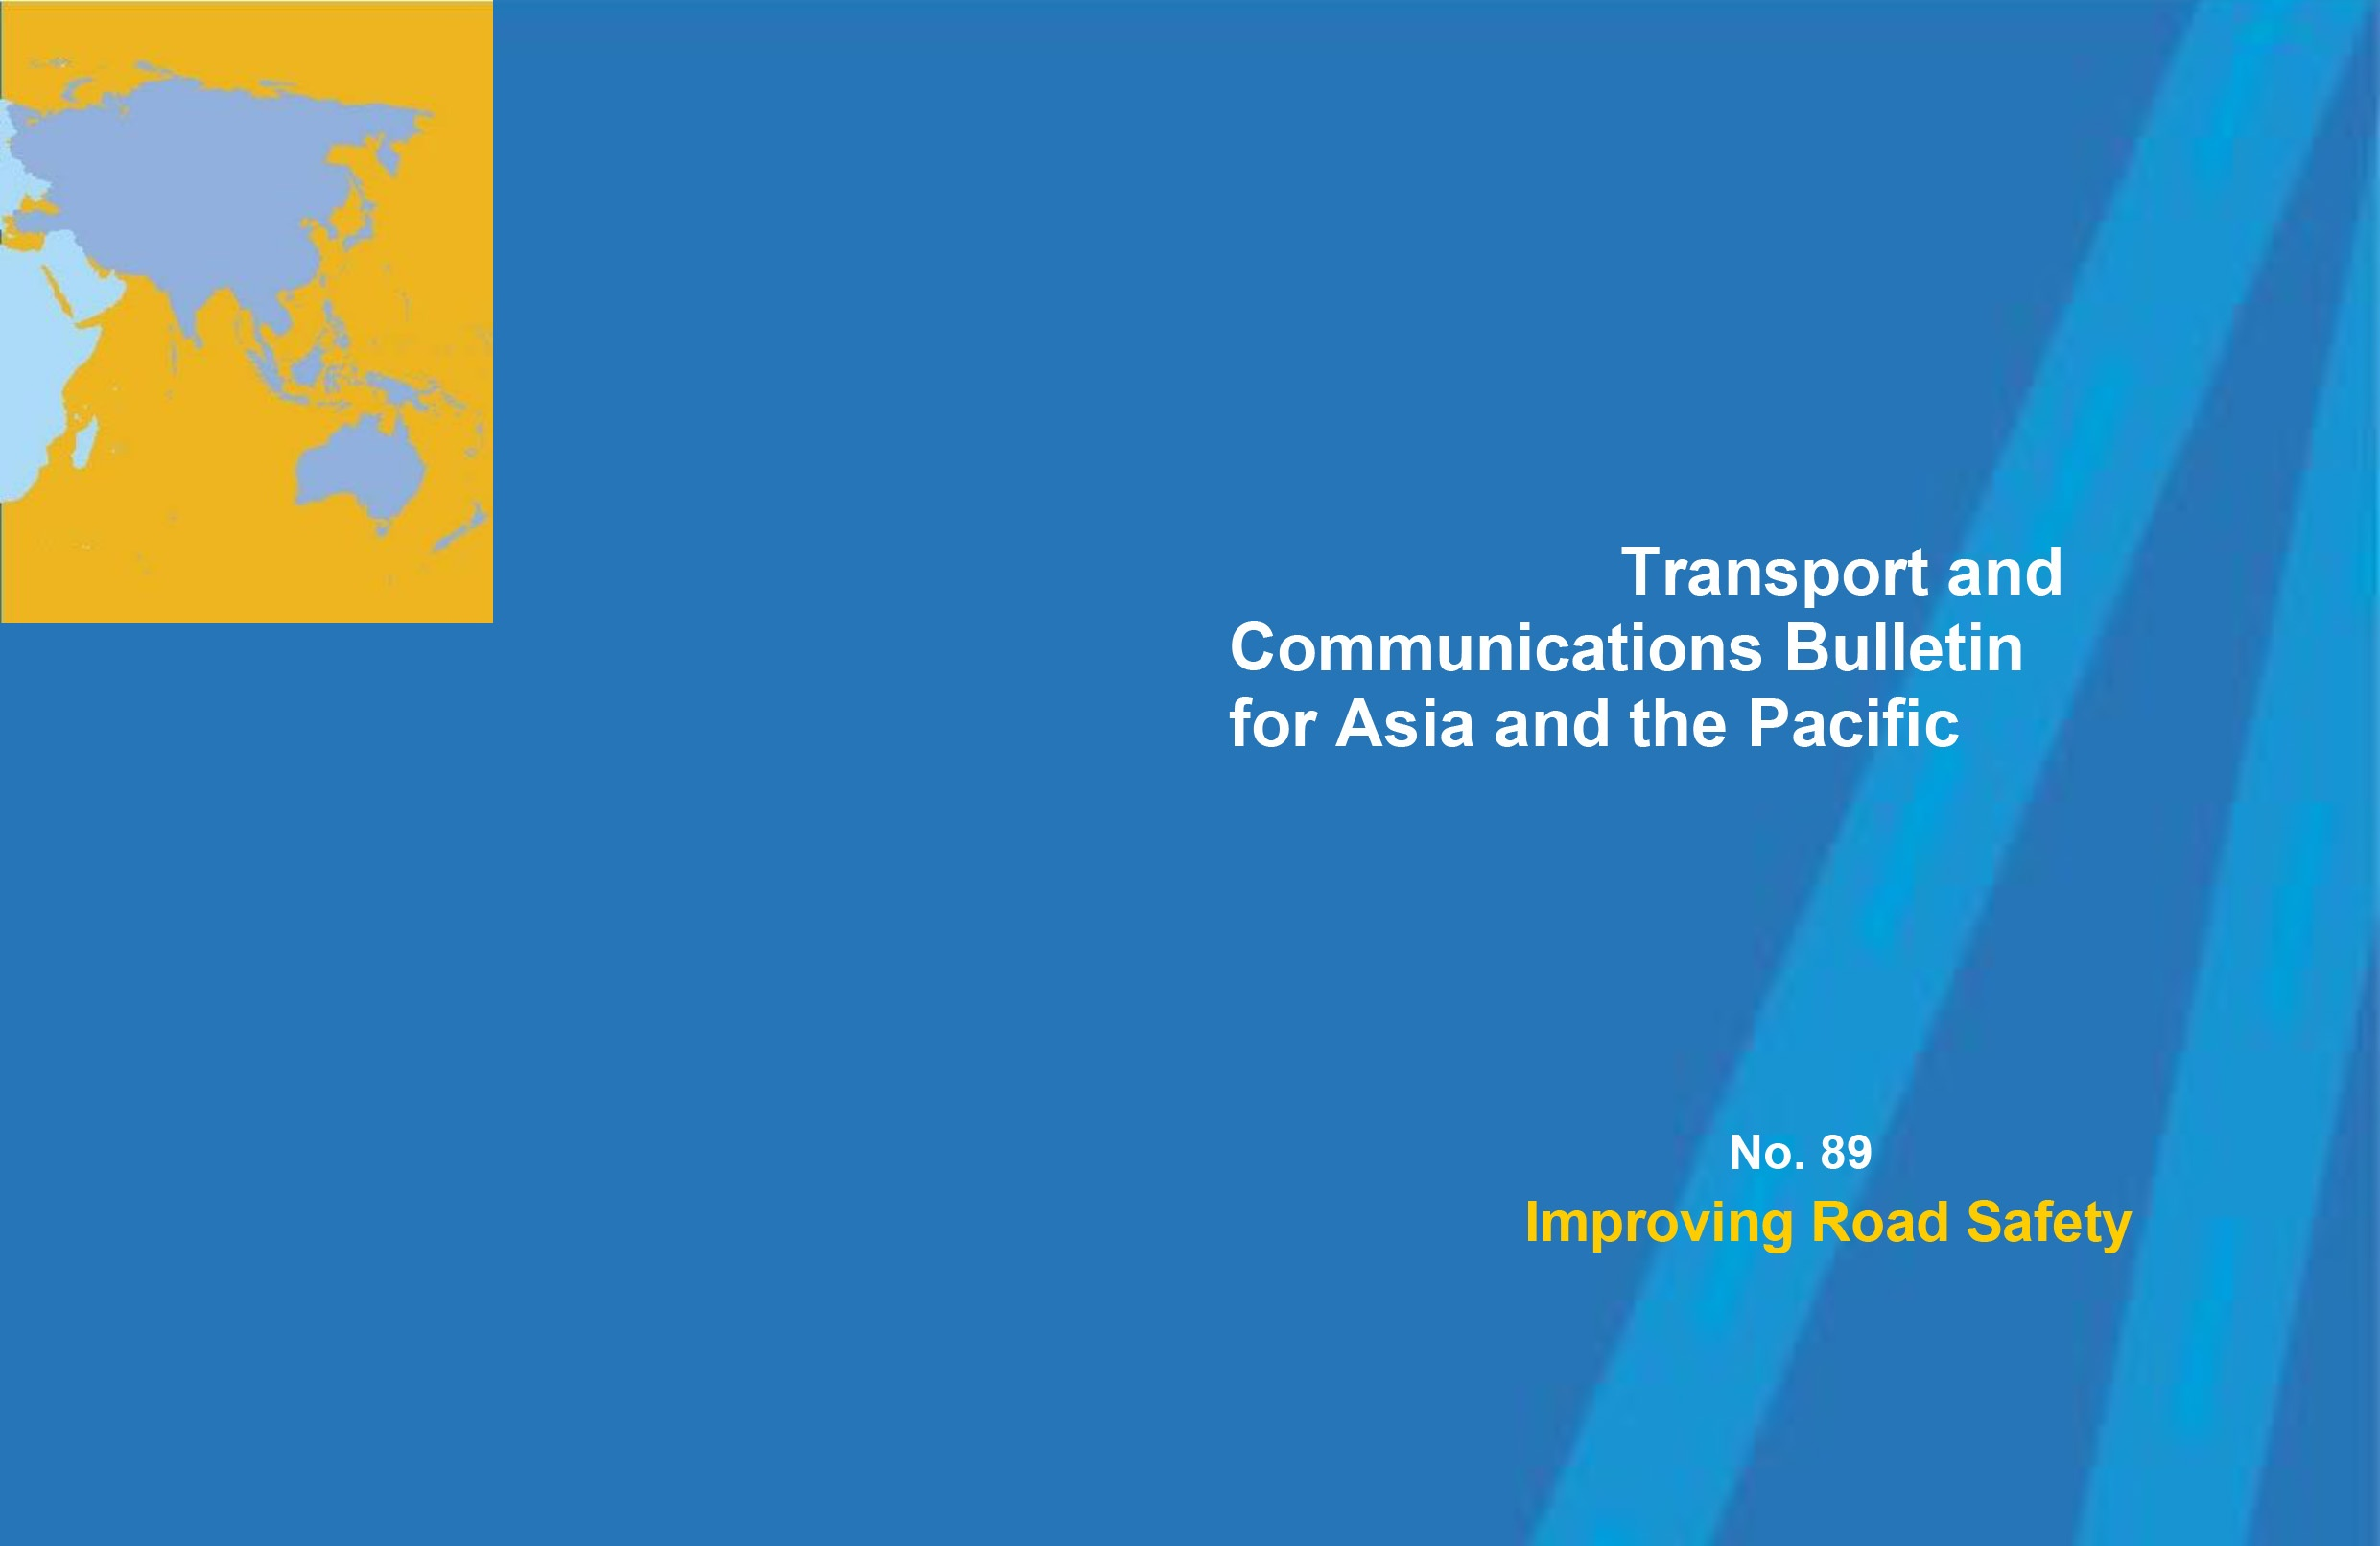 iRAP paper features in the UN ESCAP Transport and Communications Bulletin for Asia and the Pacific